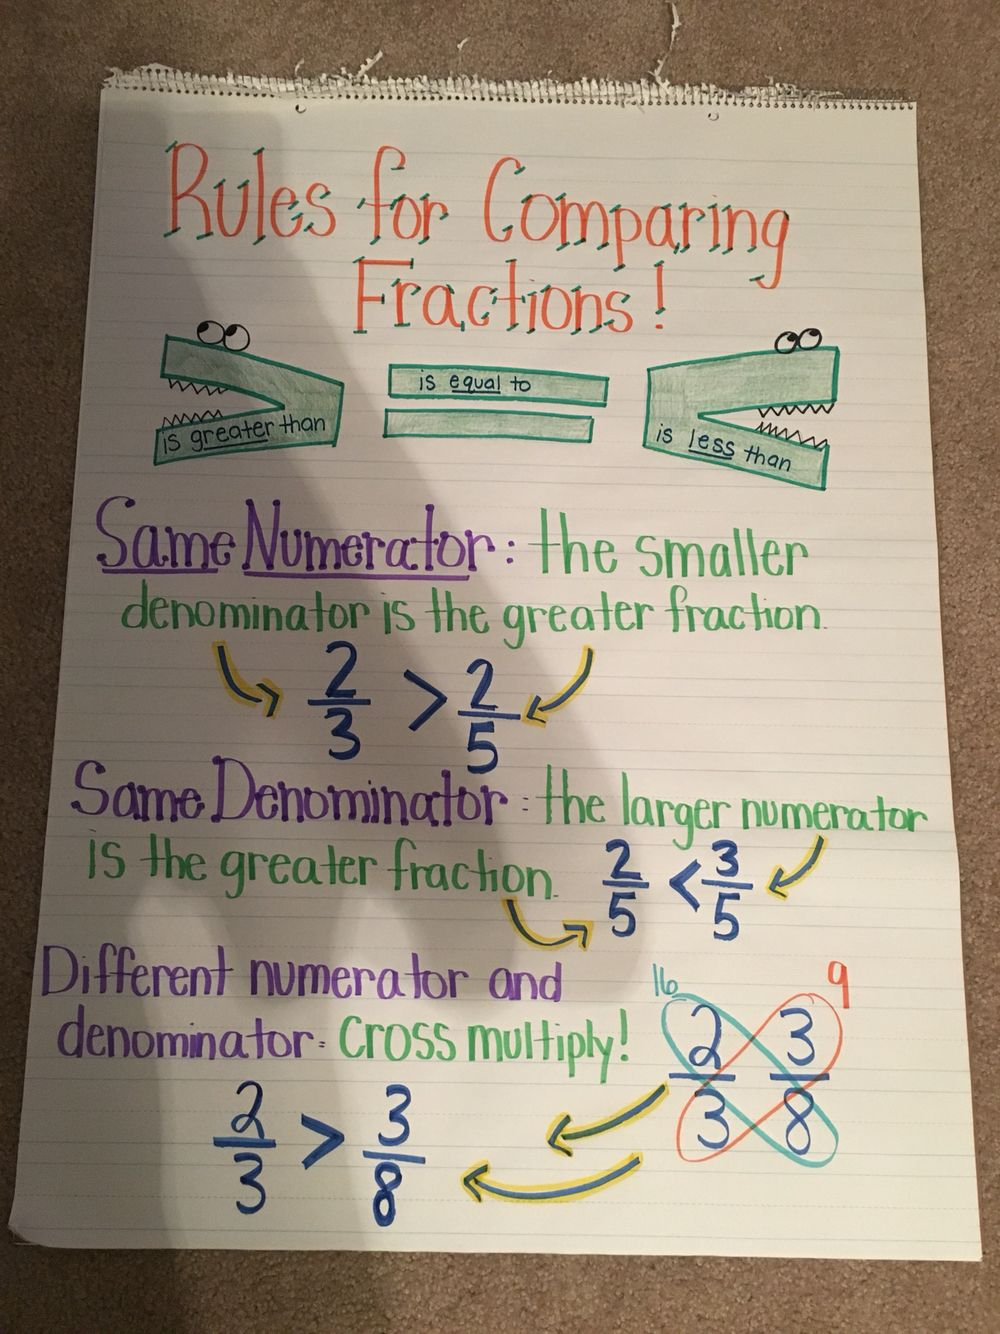 Comparing Fractions 4 Nf 2 Anchor Chart 4th Grade Fractions Math Charts Studying Math Math Lessons [ 1334 x 1000 Pixel ]